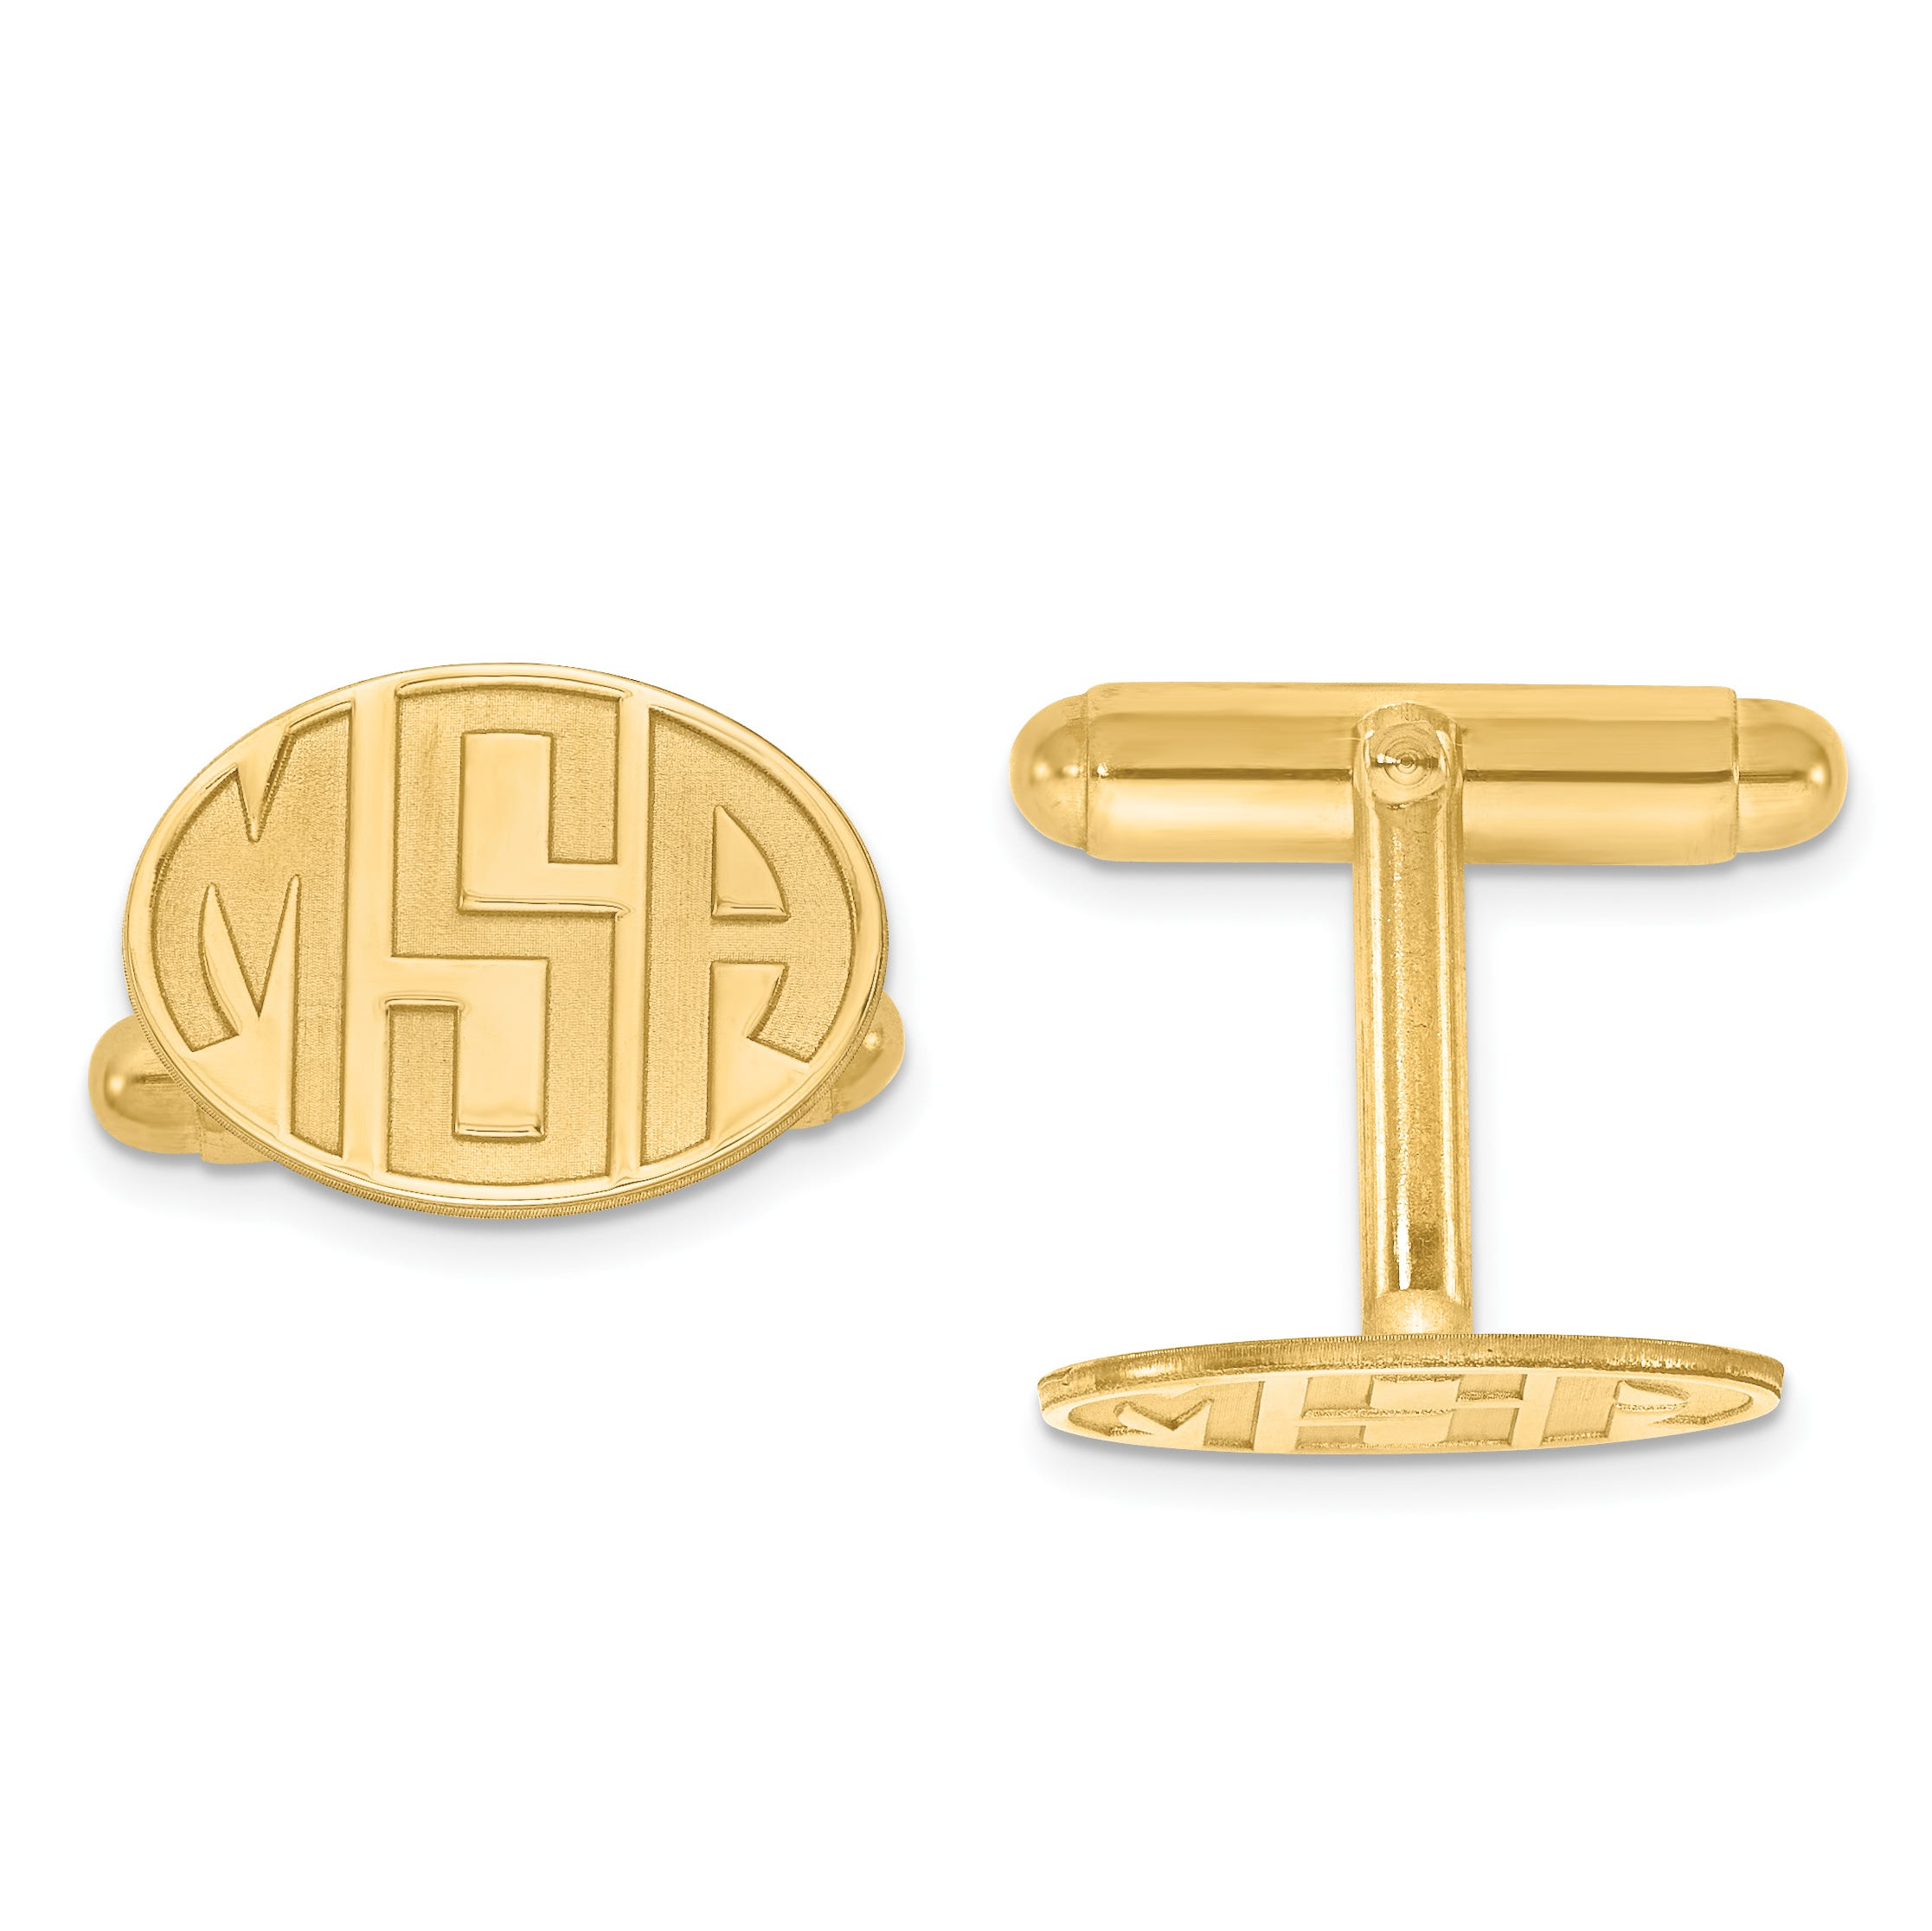 Recessed Letters Oval Monogram Cuff Links in Gold Plated Sterling Silver (up to 3 letters)